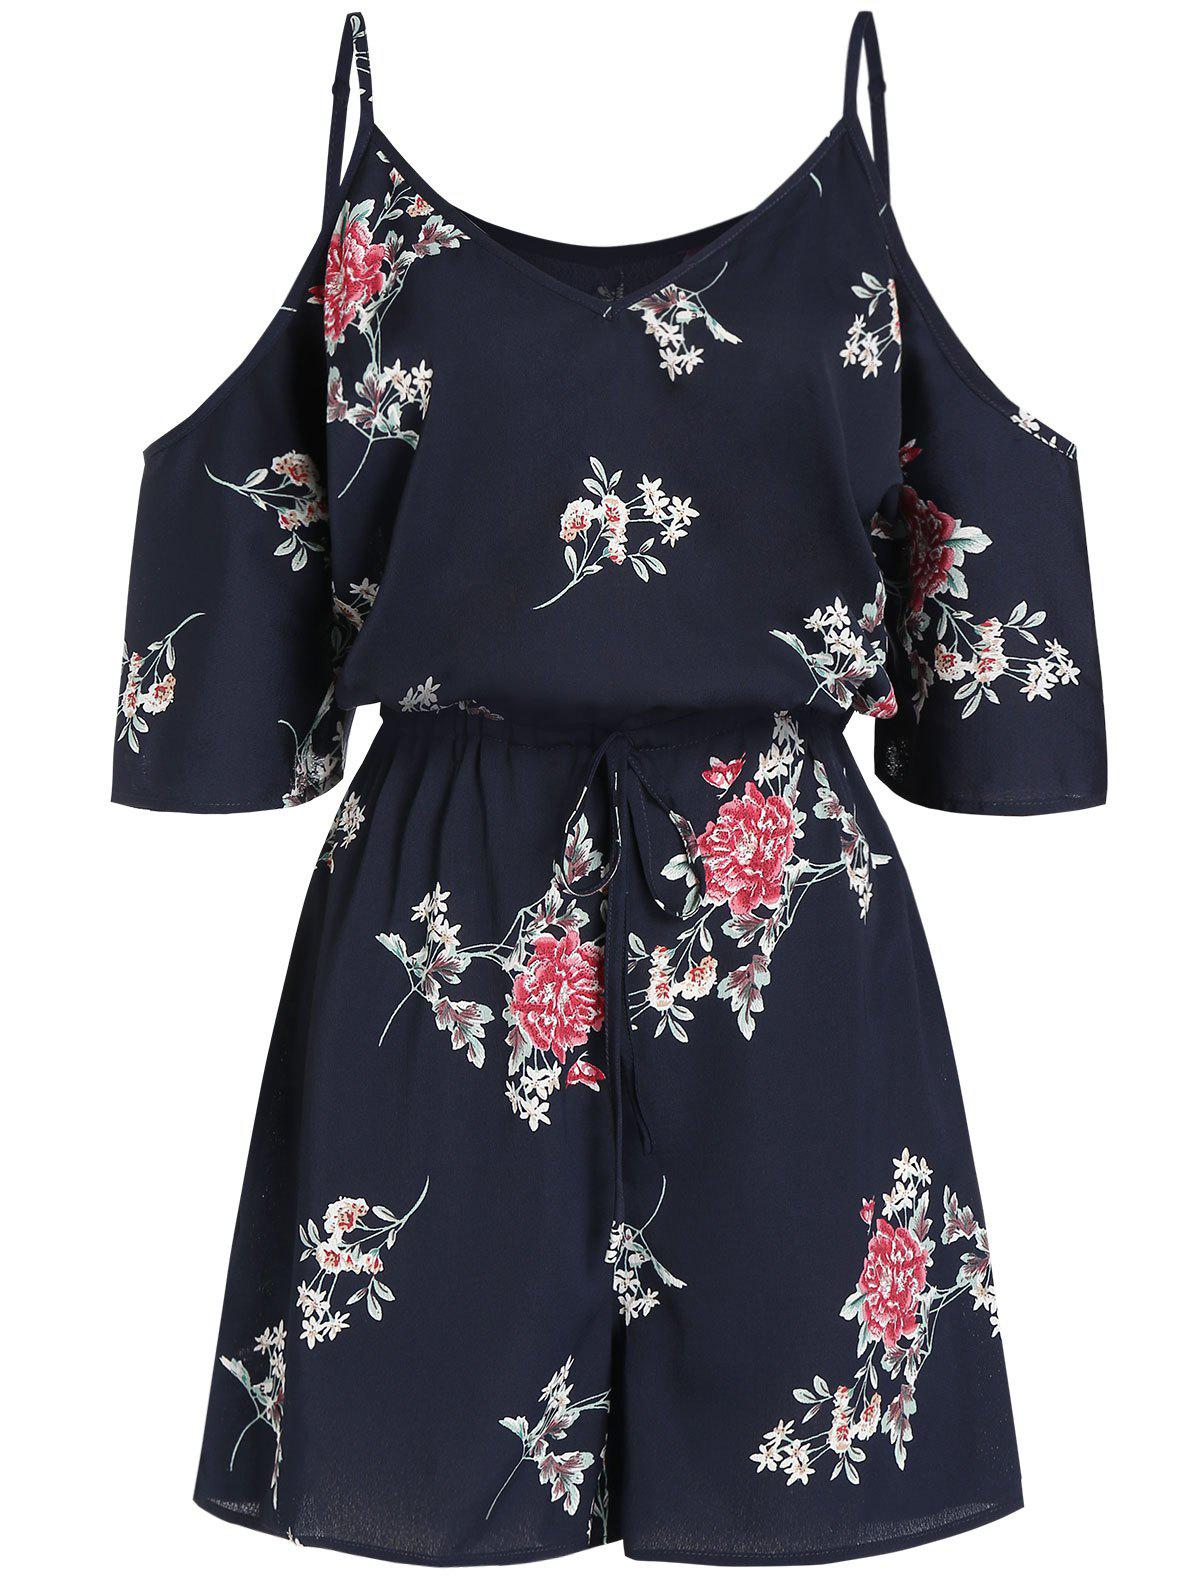 Discount Cami Cold Shoulder Floral Print Tie Dress